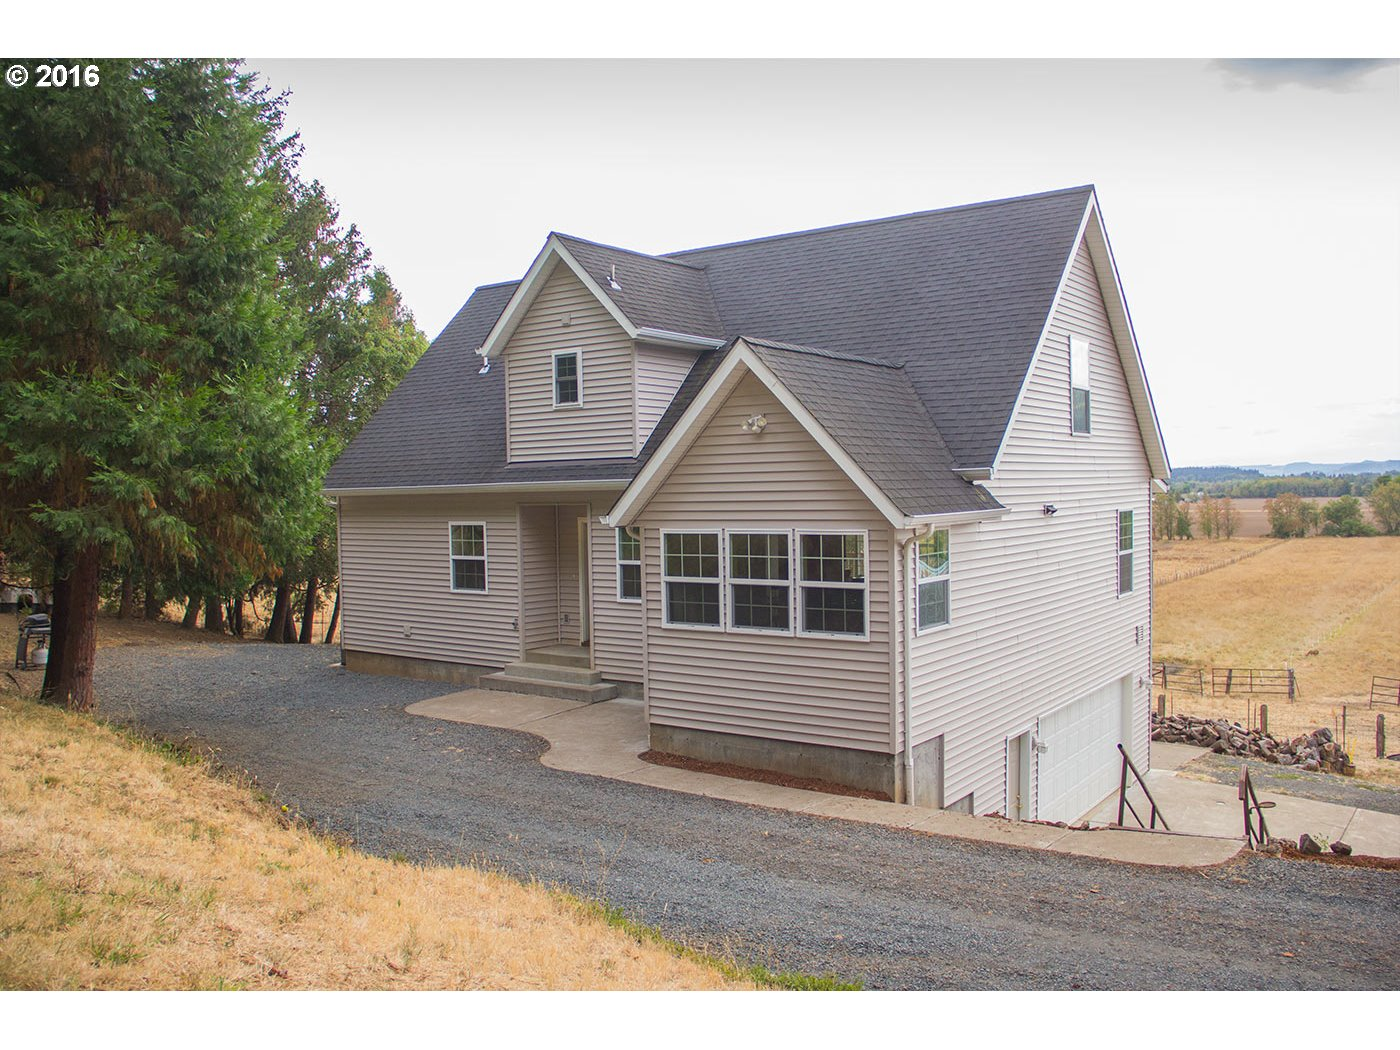 83725 S MORNINGSTAR RD, Creswell, OR 97426